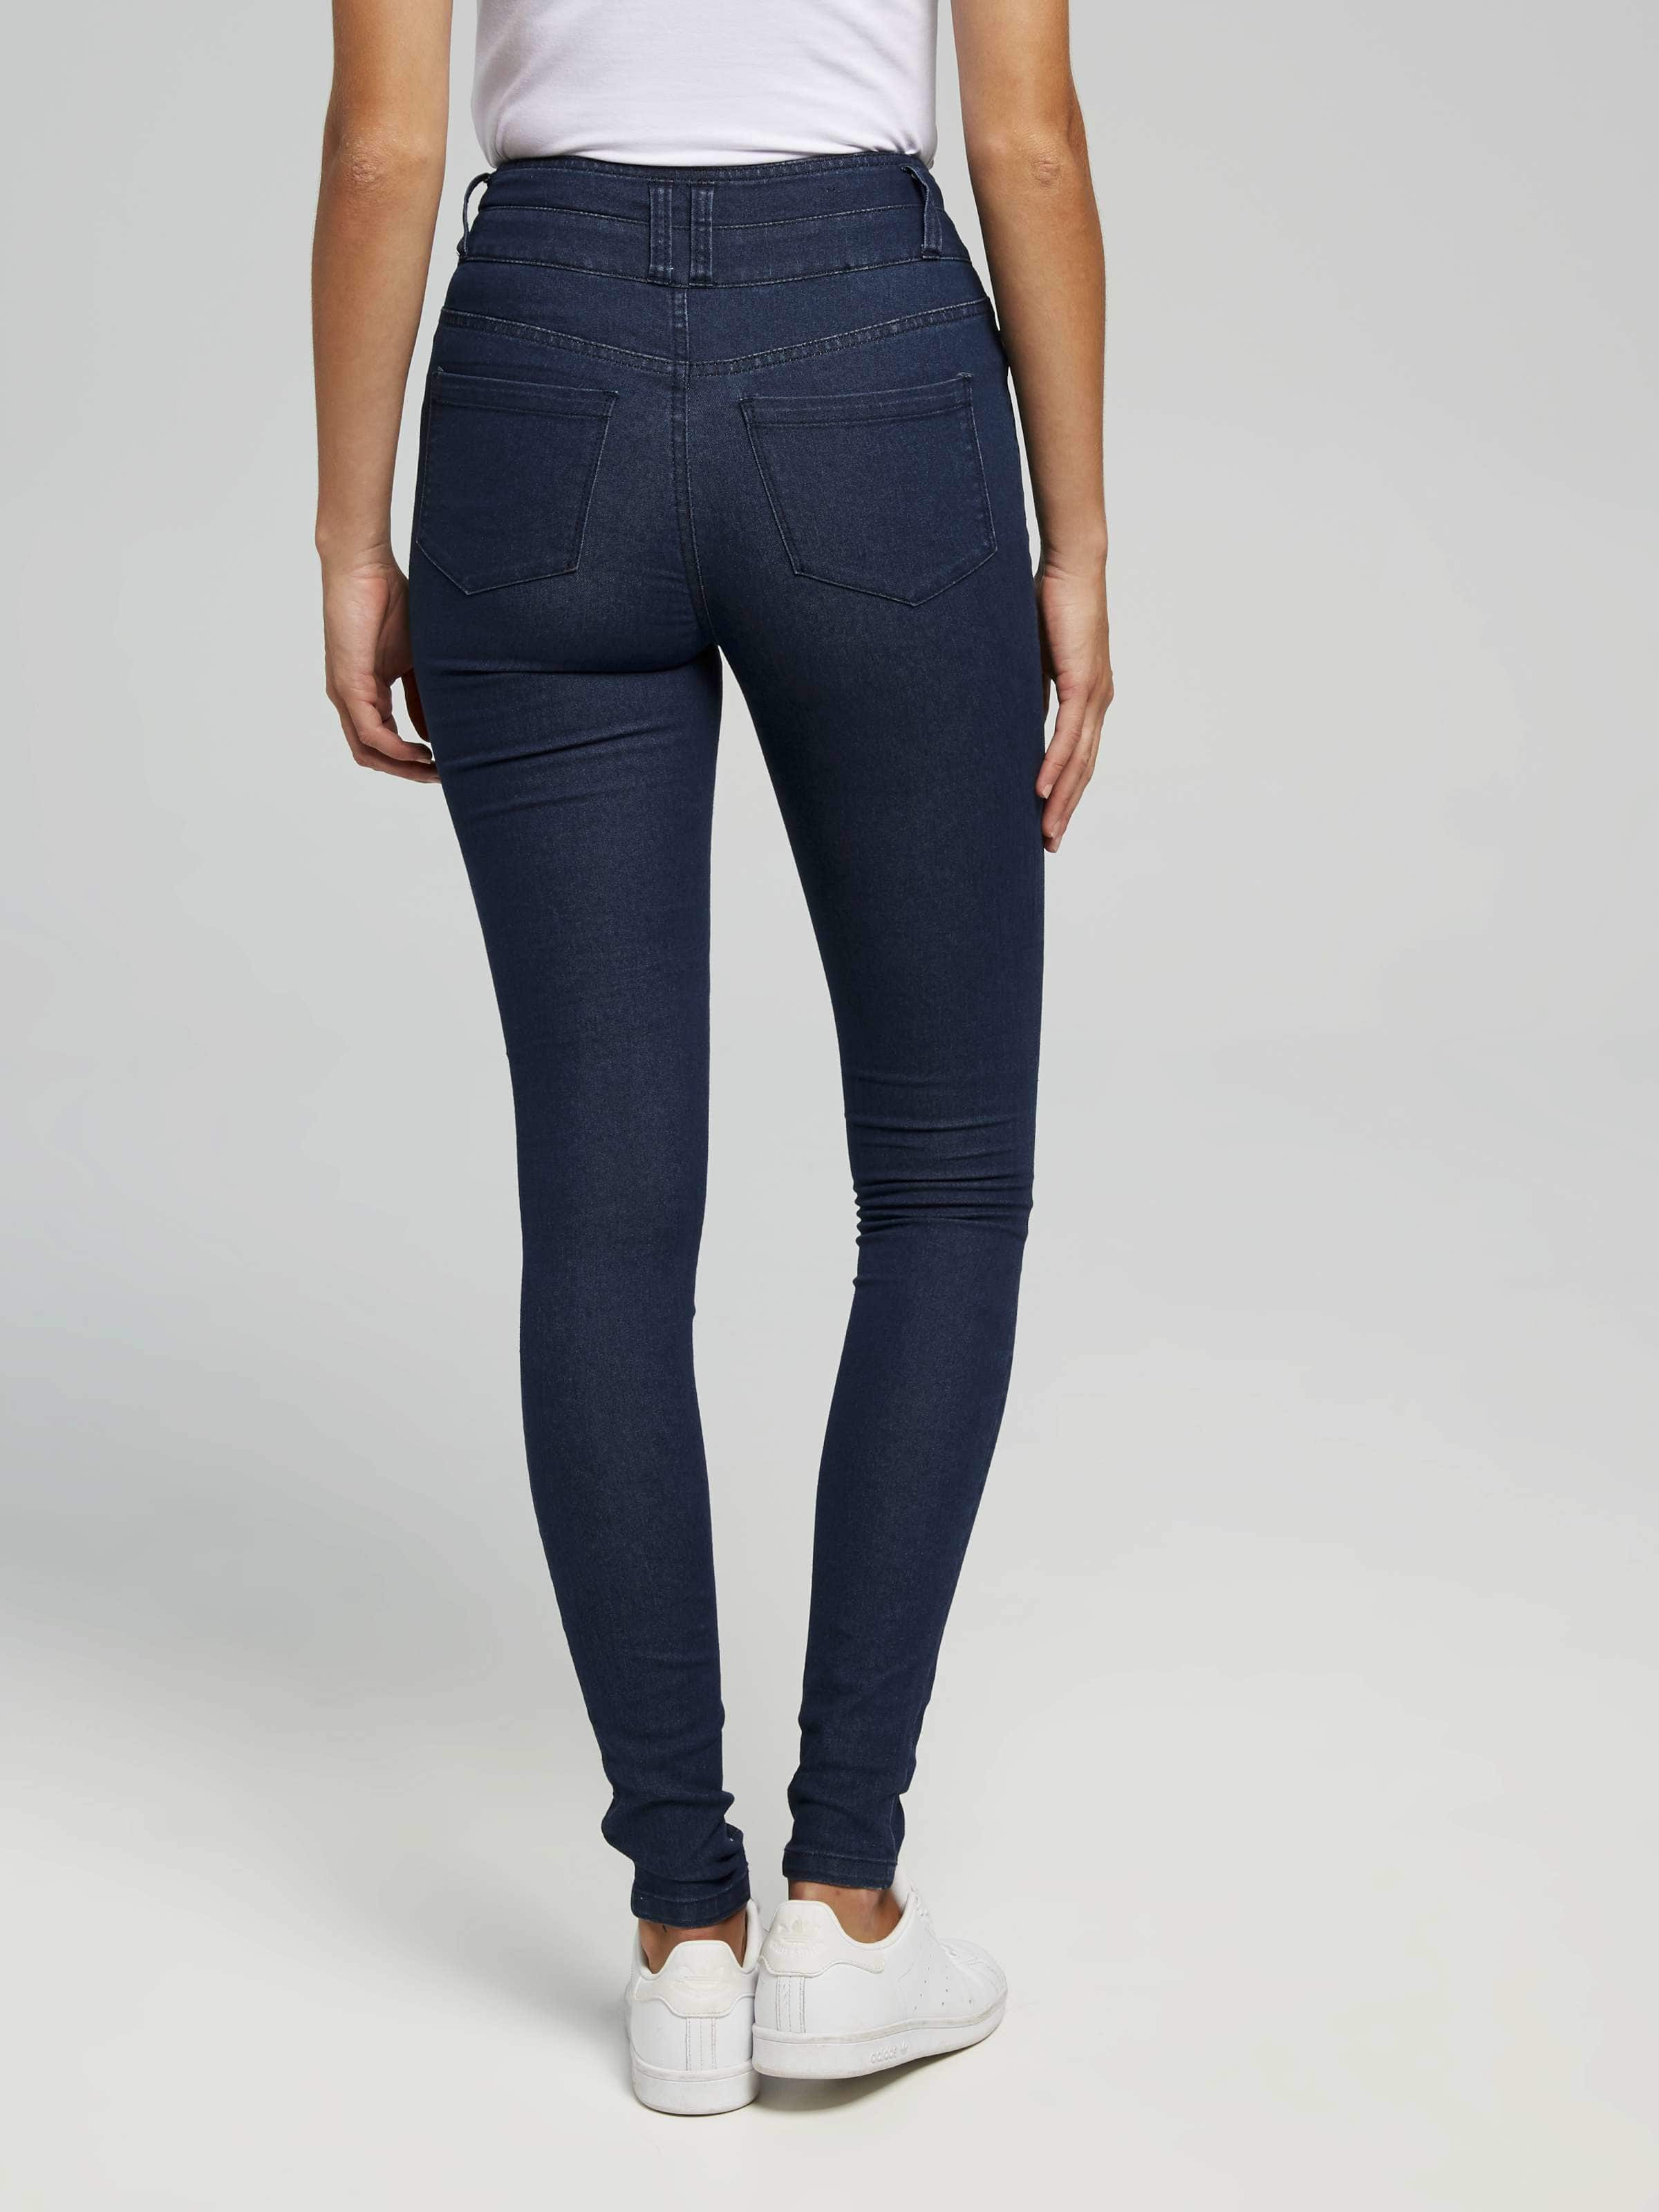 c44a2e815f3a3 ... Image for 3 Button High Rise Jeans from Jay Jays ...